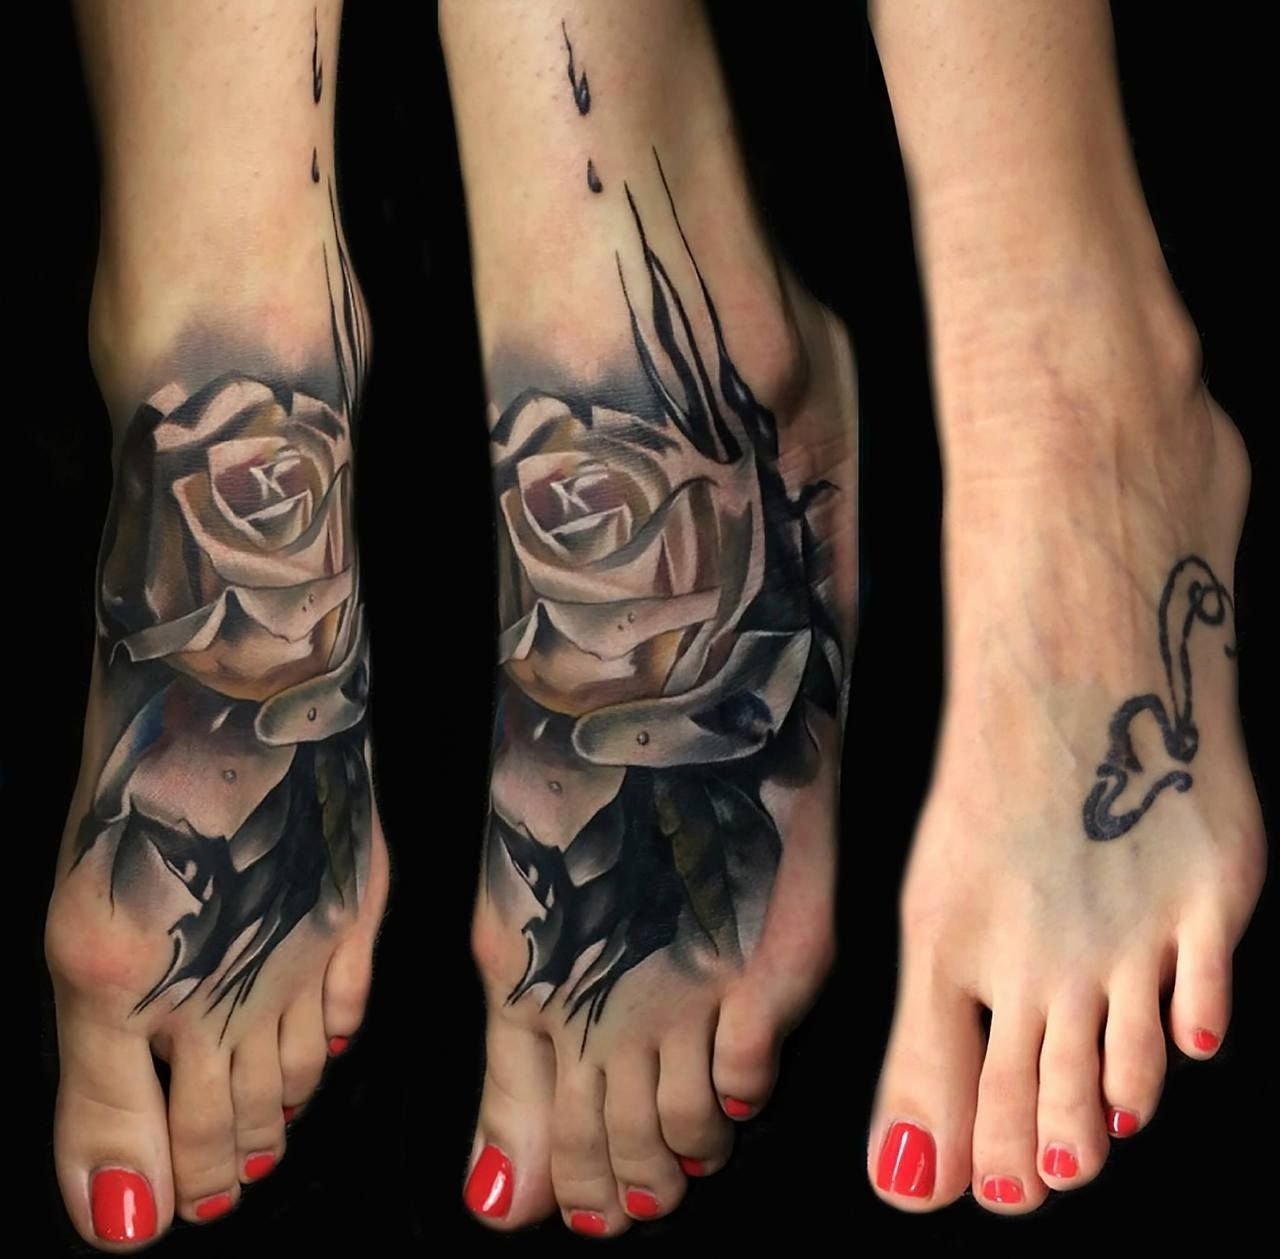 10 Nice Good Cover Up Tattoos Ideas coverup tattoo foot rose cover up tattoo design best tattoo 6